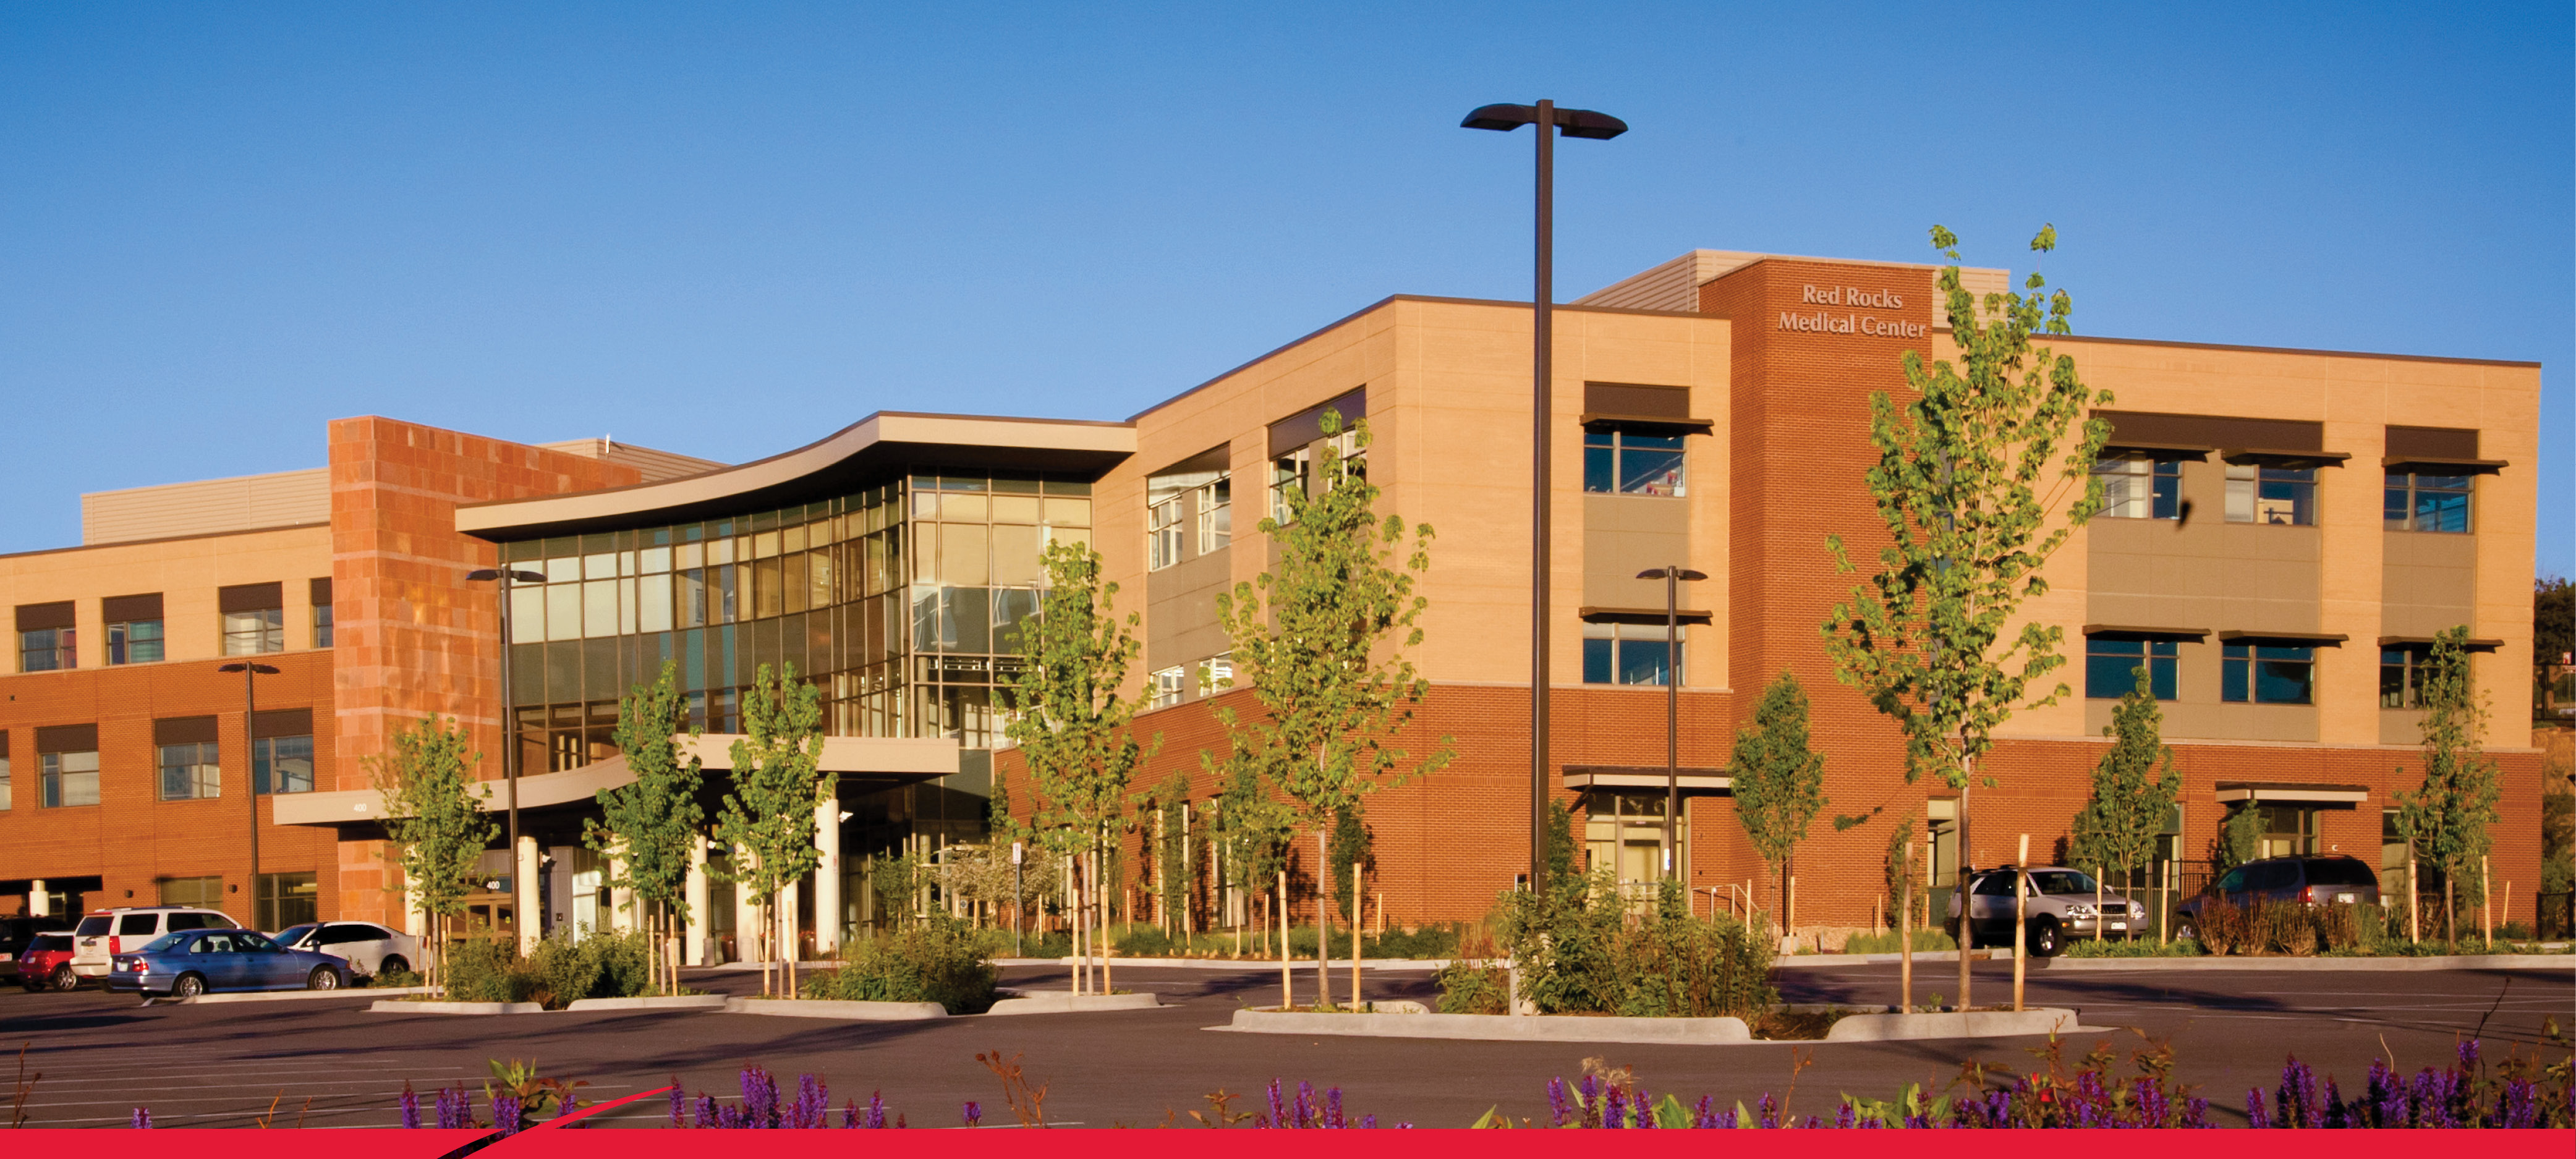 Development Solutions Group – Red Rocks Medical Center